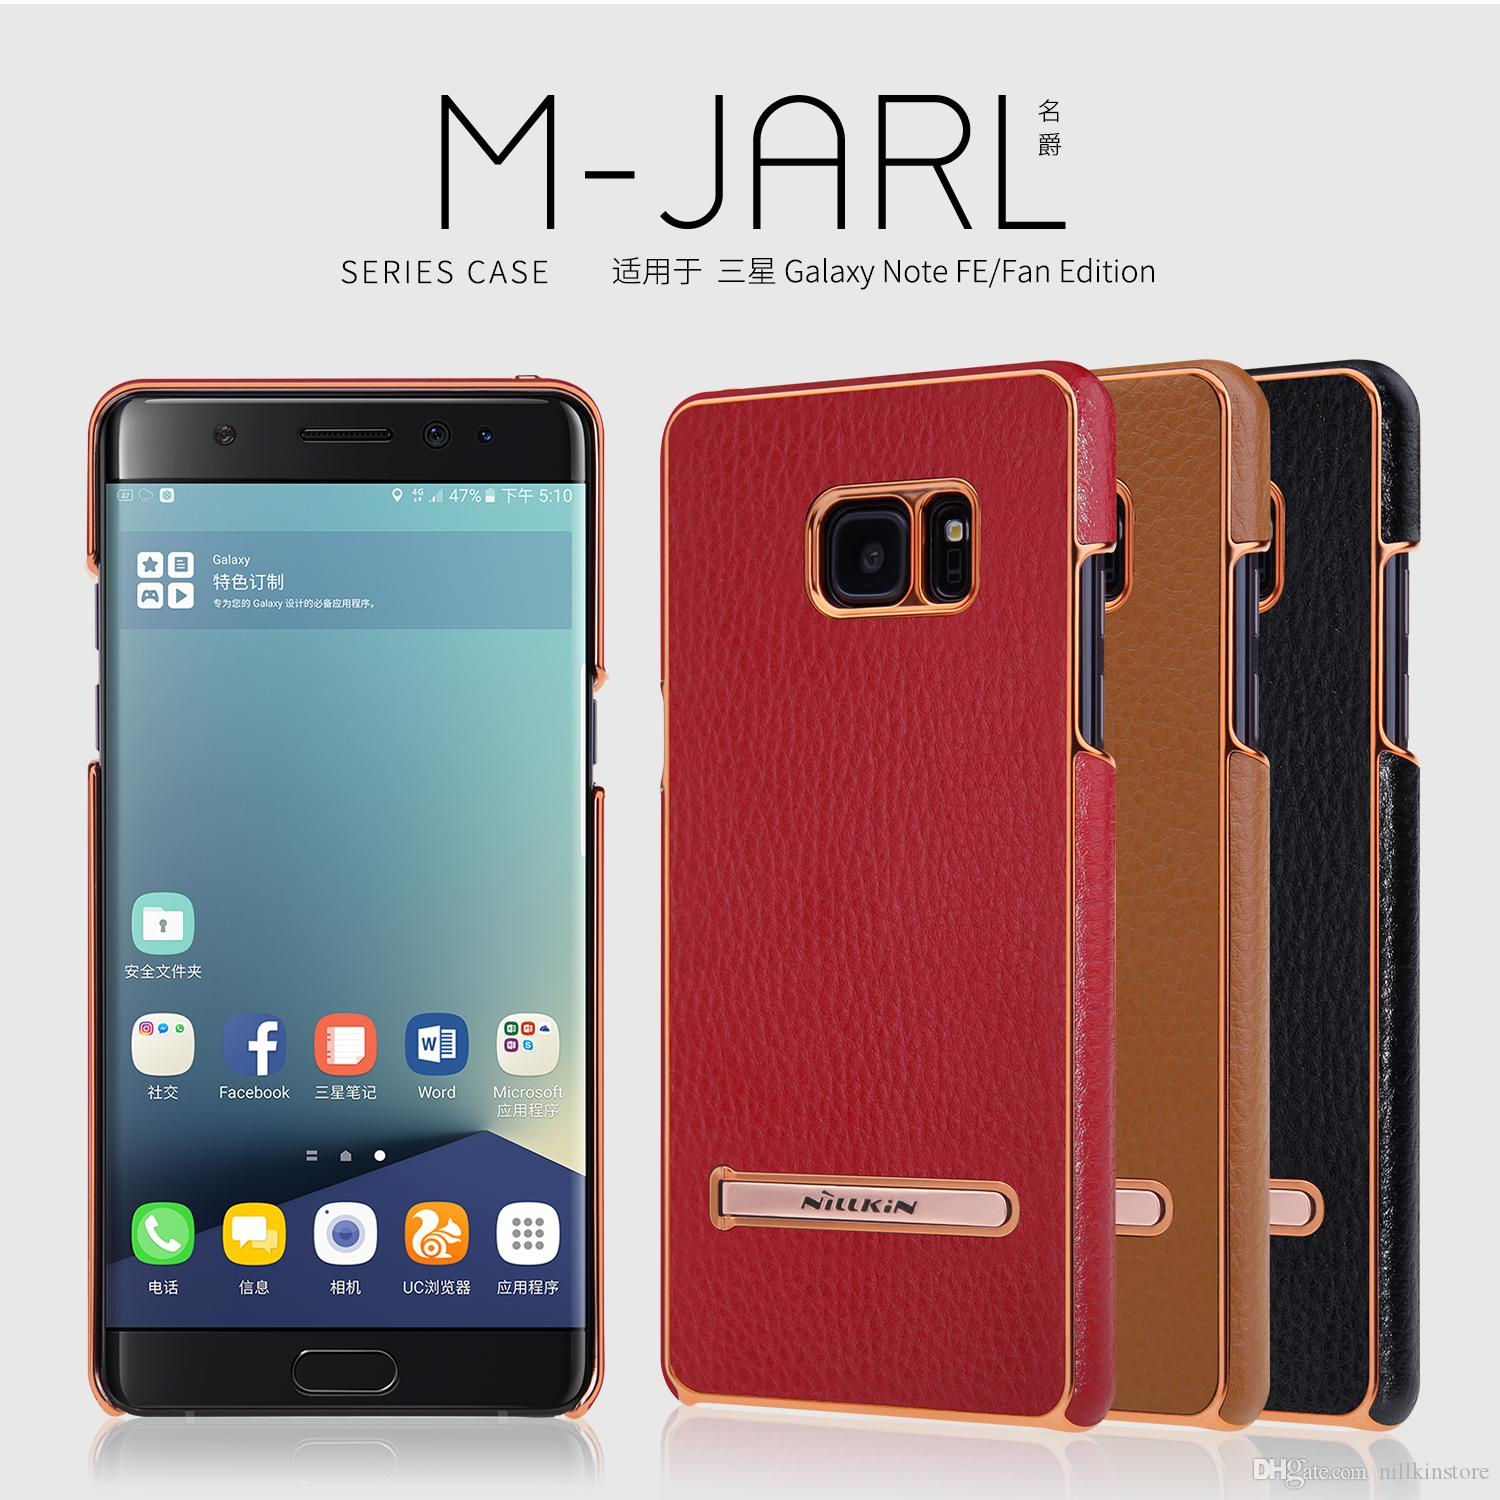 low priced e48ec 47c8e NILLKIN Phone Cover for Samsung Galaxy Note Fan Edition Hard Case M-JARL  Series Leather Coated Hard PC Bag Shell with Kickstand